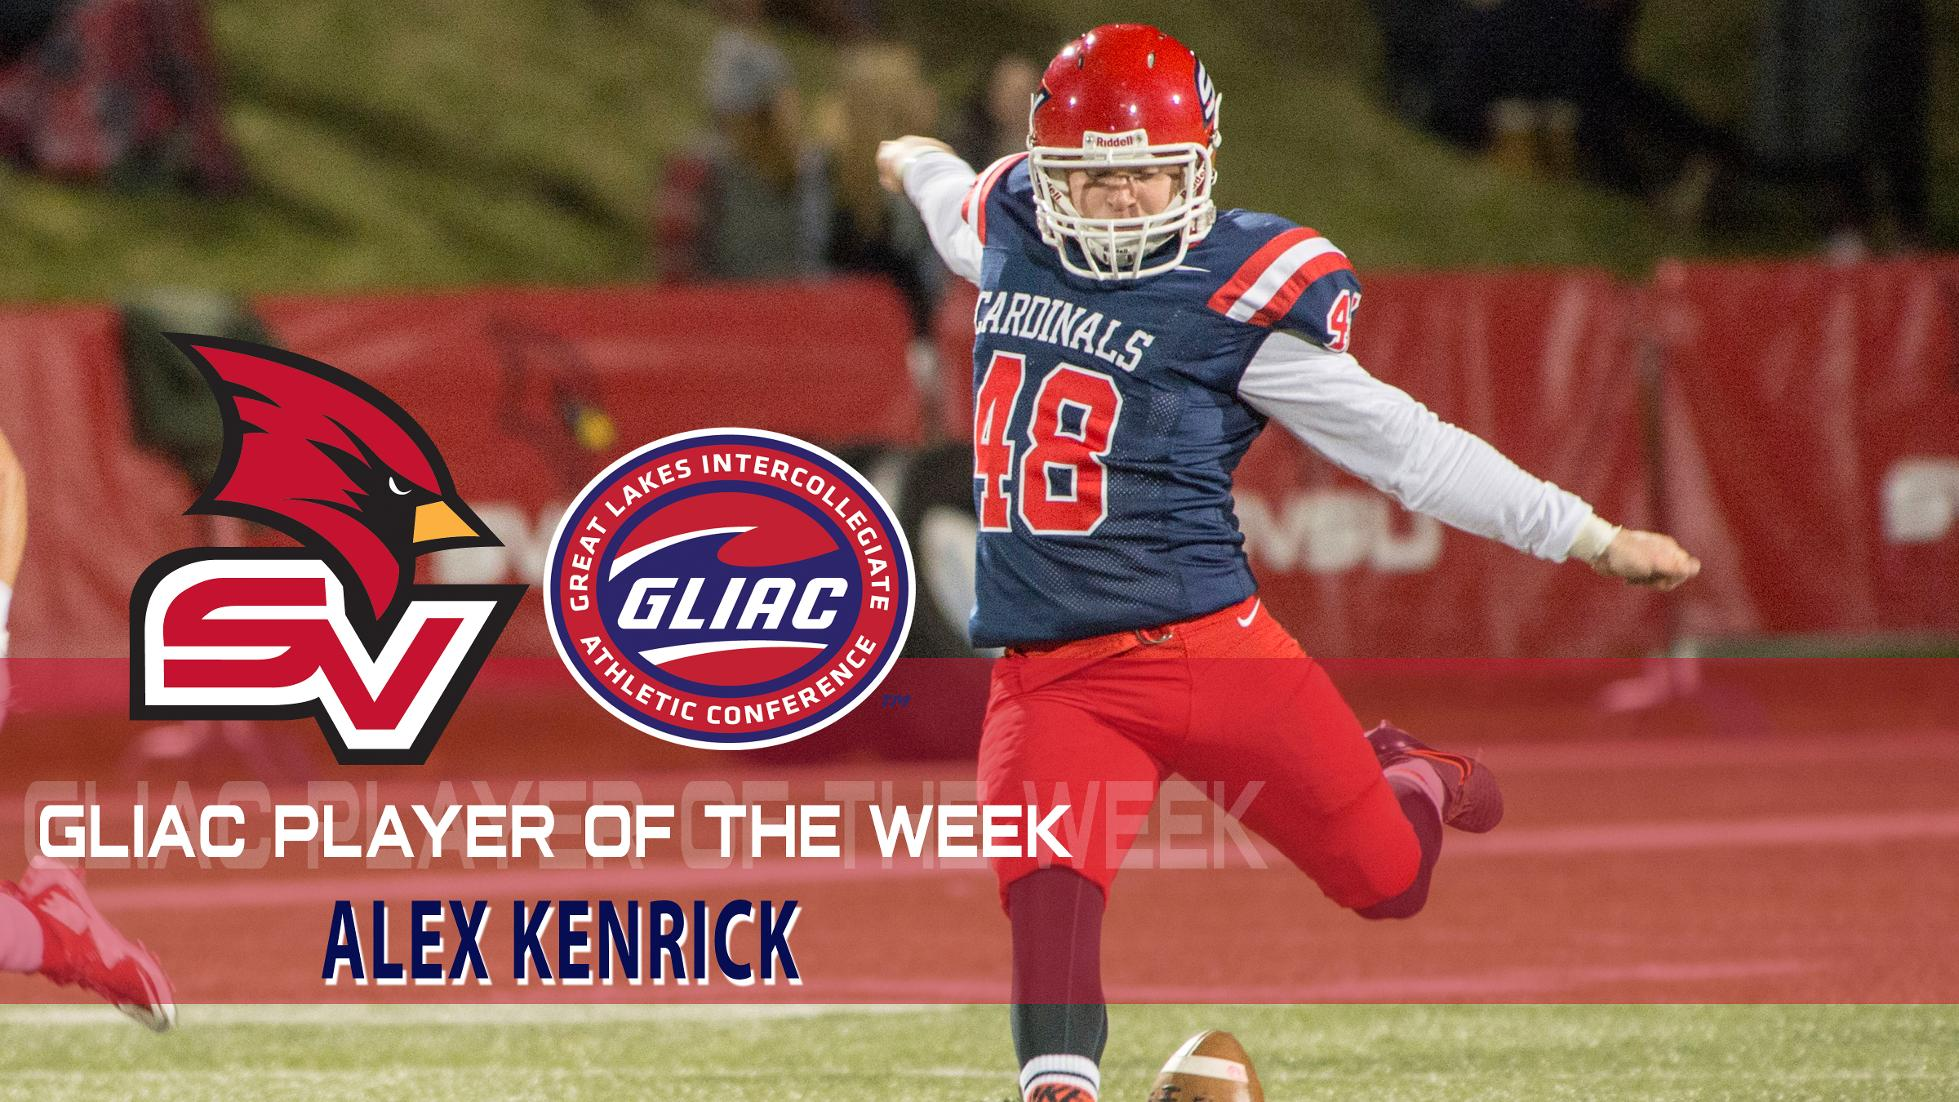 Kenrick Earns Second GLIAC Special Teams POTW Honor